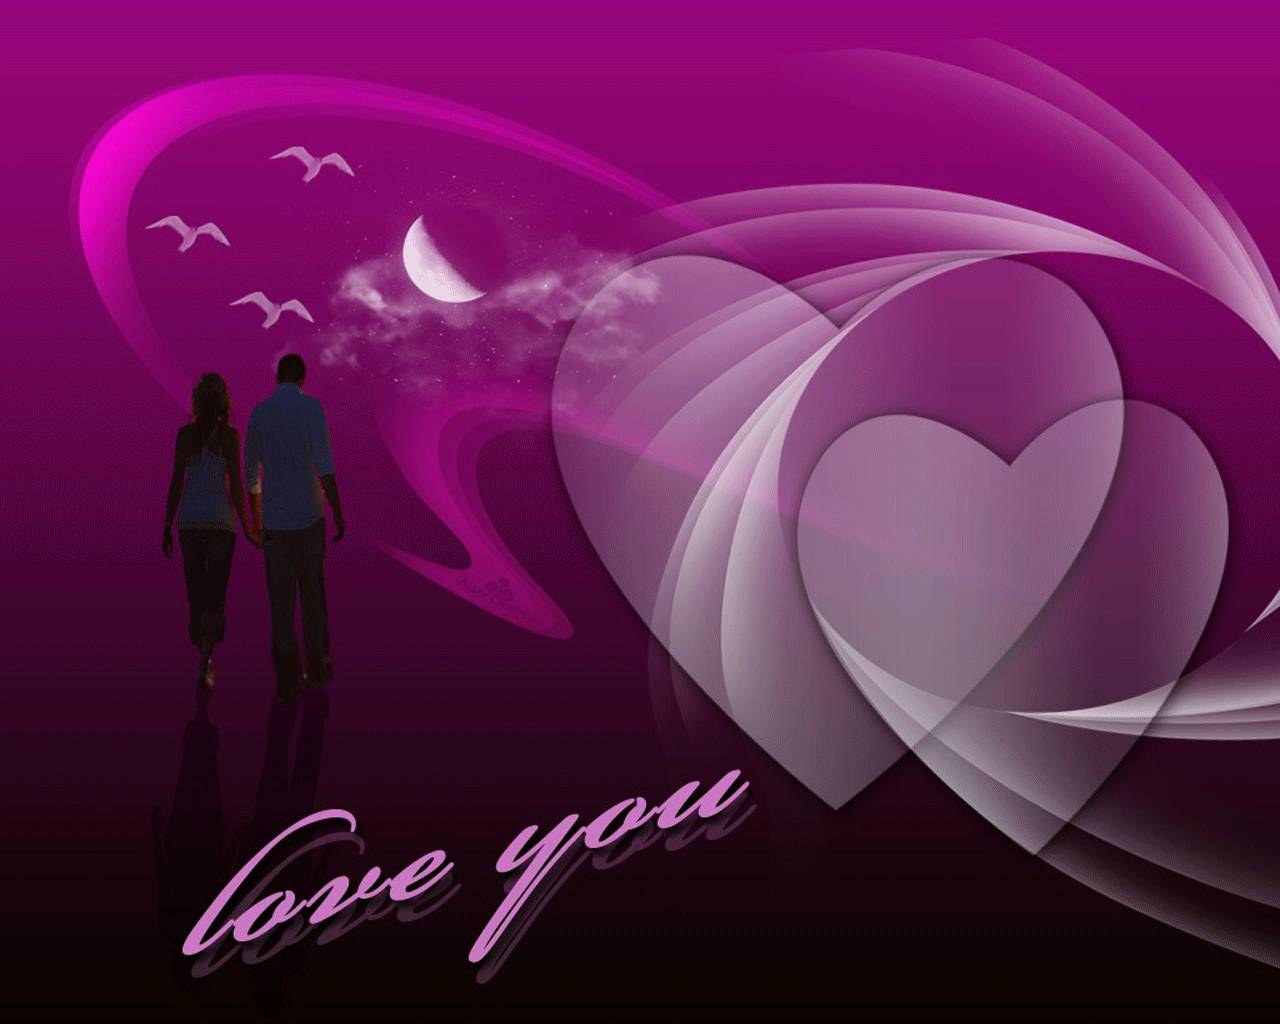 Cute Love Wallpapers Free Download For Desktop